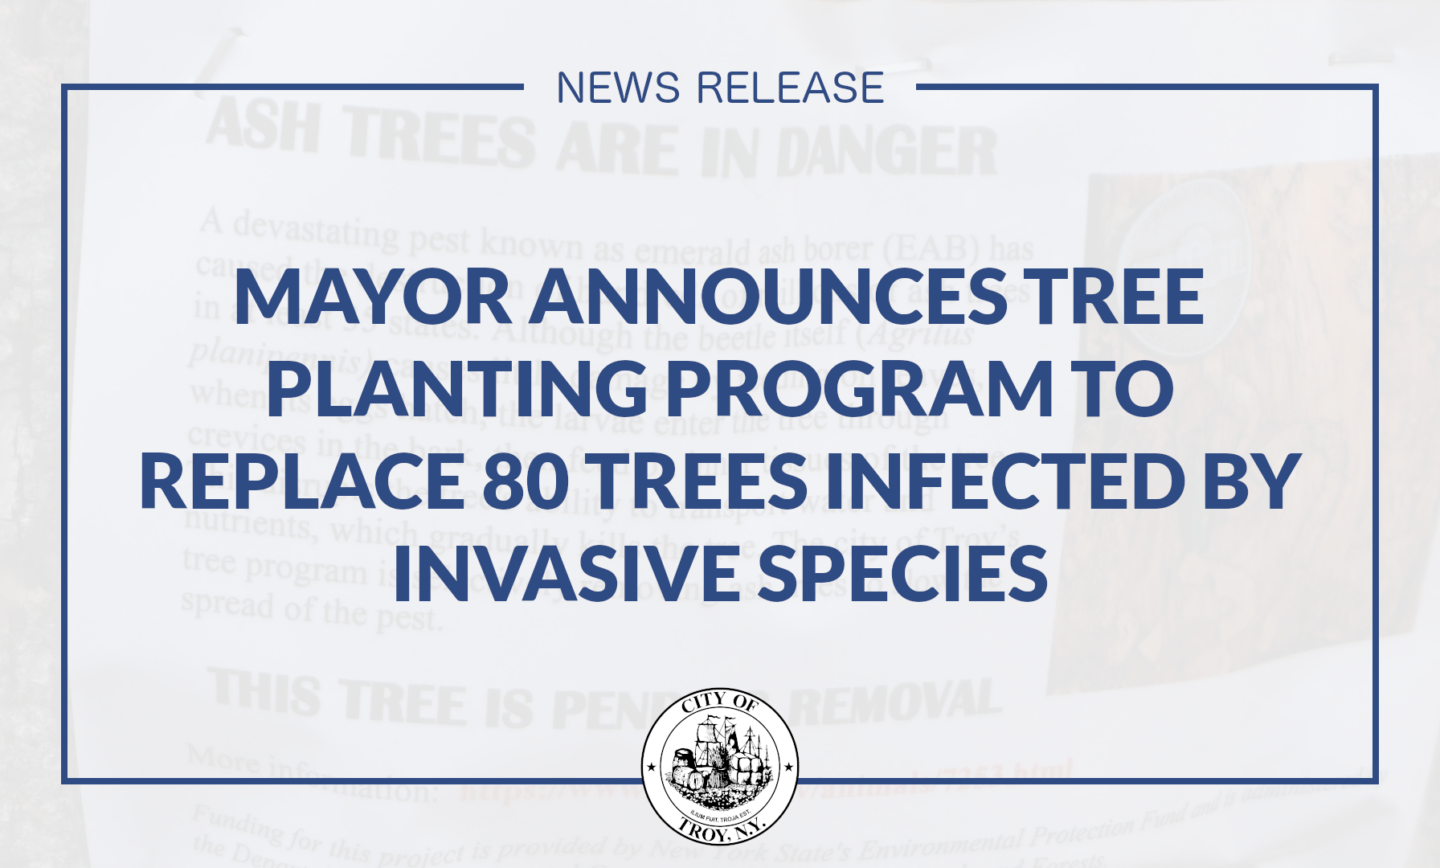 Mayor Madden Announces Tree Planting Program to Replace 80 Trees Infected by Emerald Ash Borer